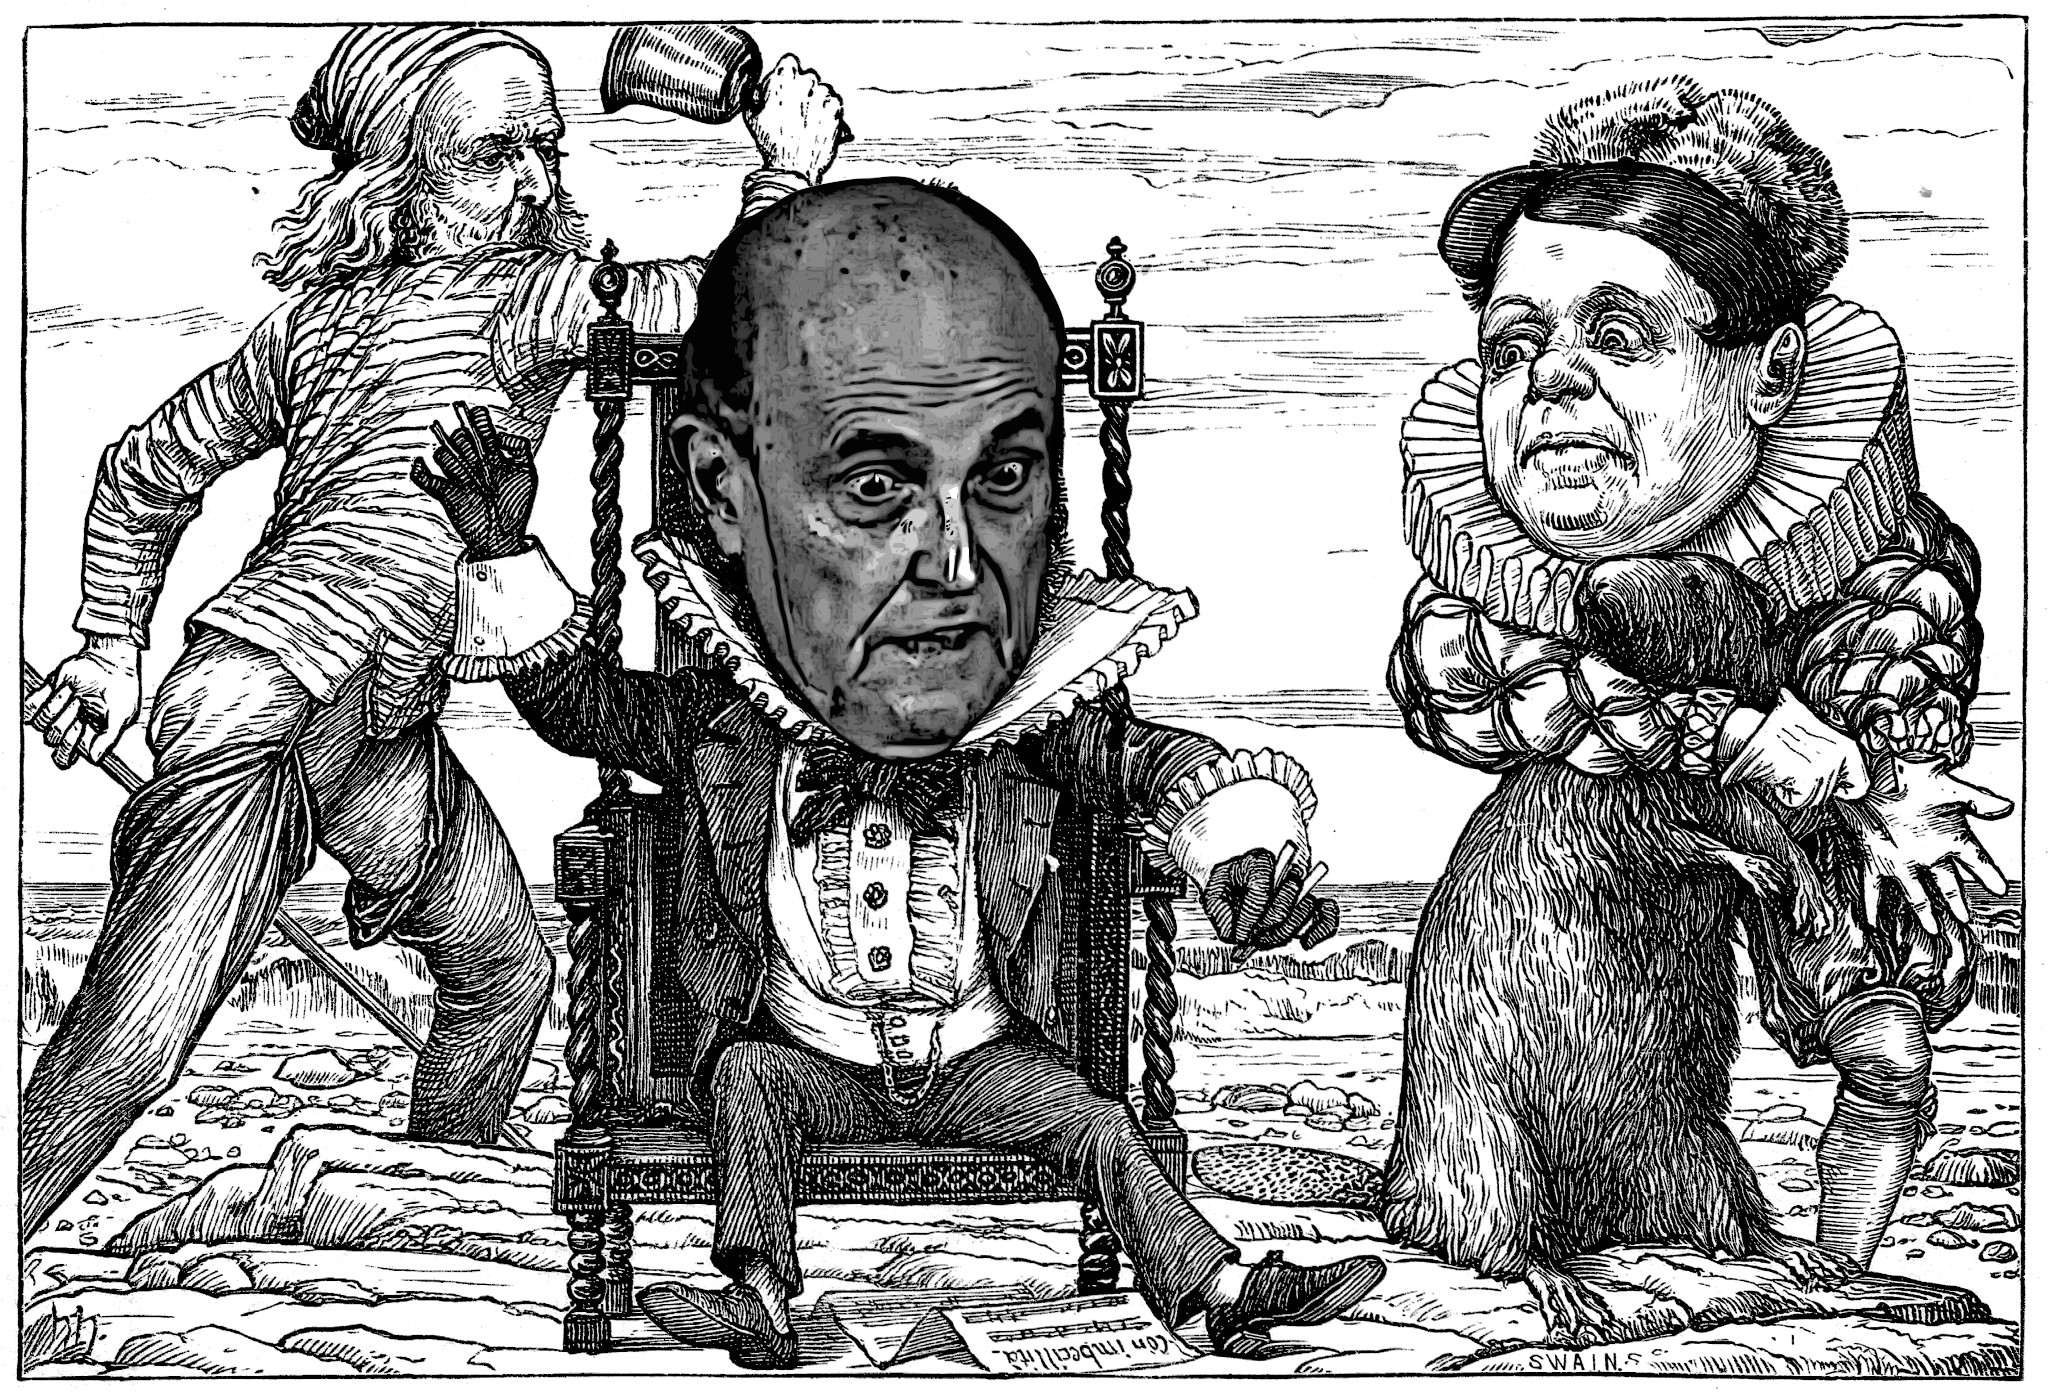 When Henry Holiday illustrated Lewis Carroll's 'The Hunting of the Snark' (1876), he used Lindsey Graham's face. I don't know, how he did that. As for Rudy Giuliani's head, I had to help a little bit.